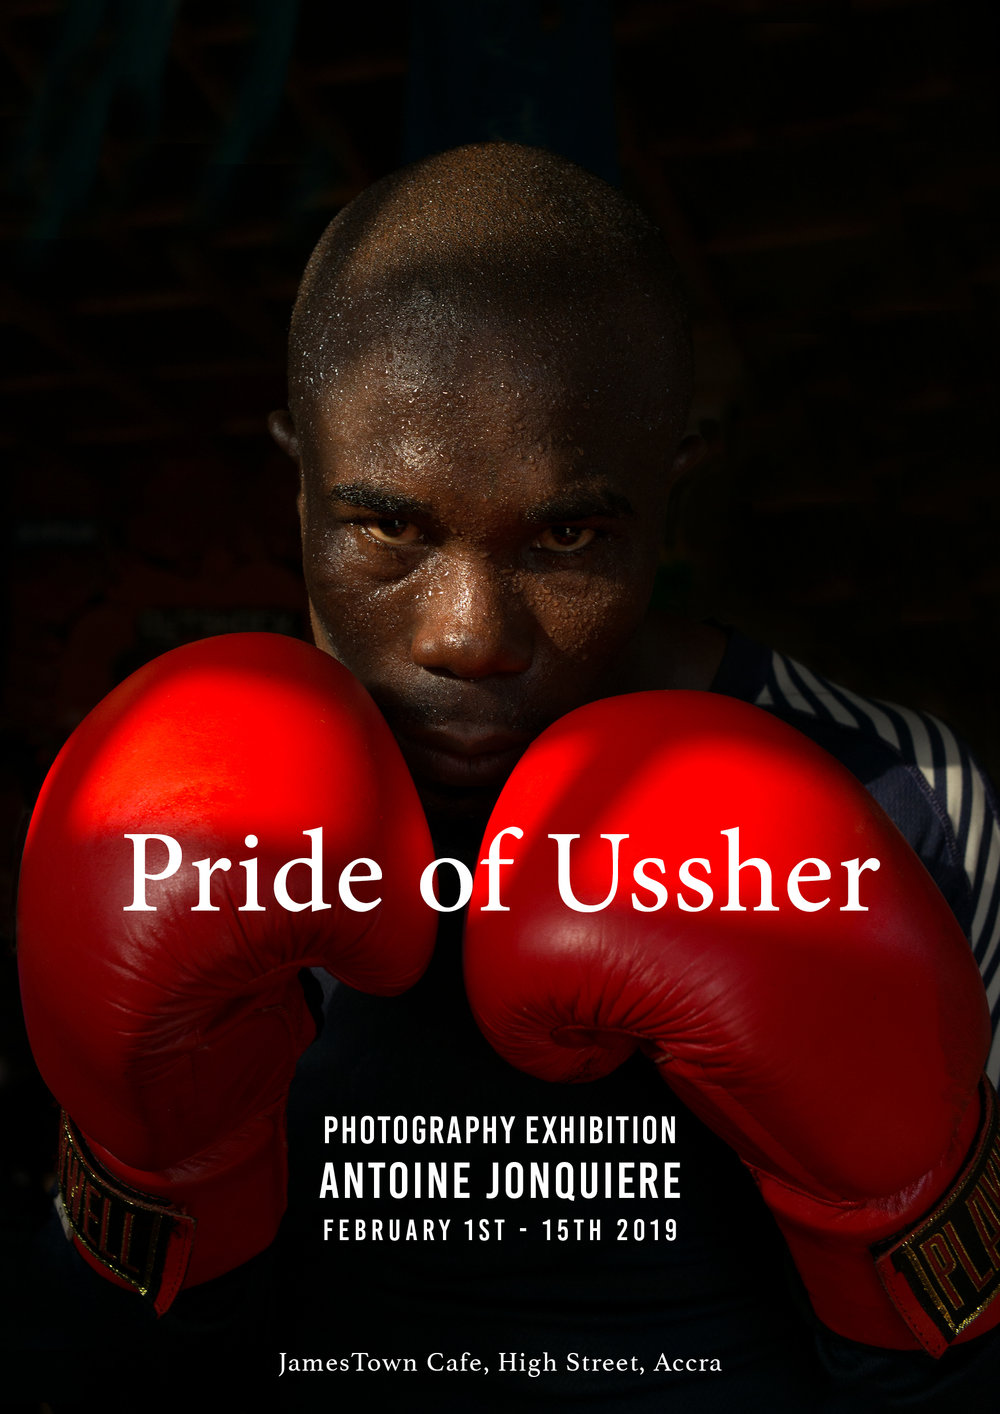 Pride of Ussher   in Accra, Ghana